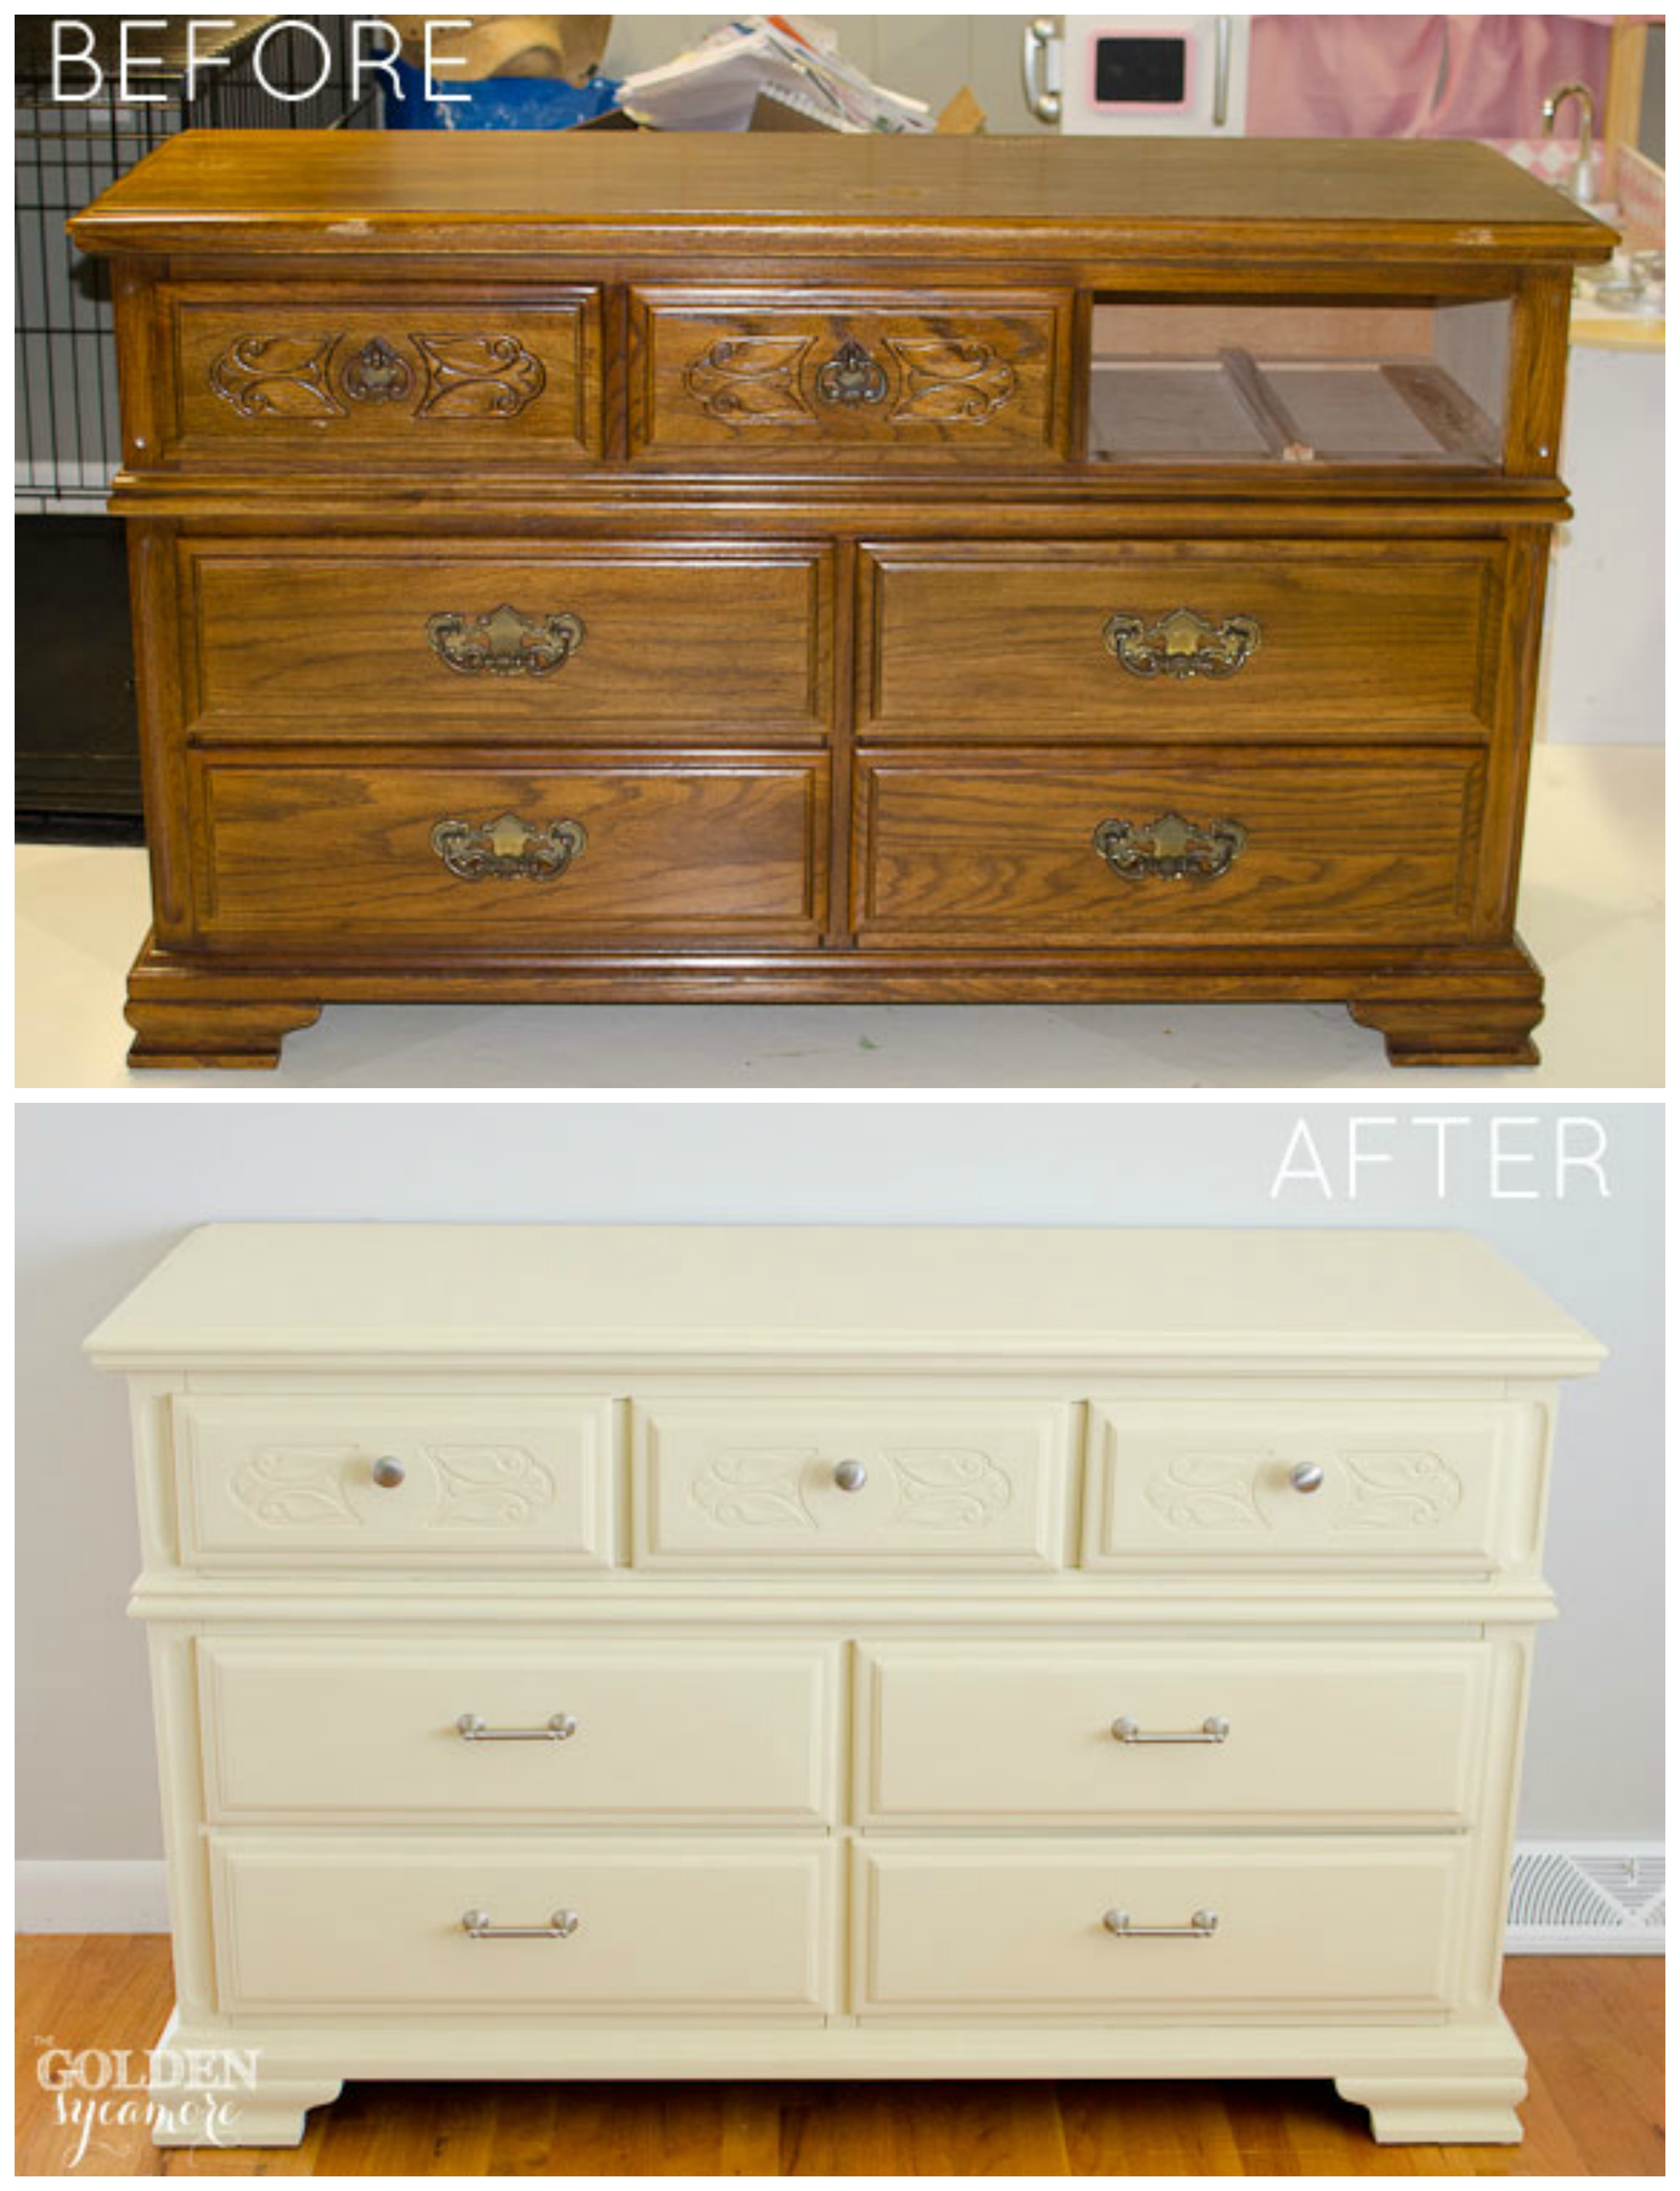 How To Restore Wood Furniture That Has Been Painted